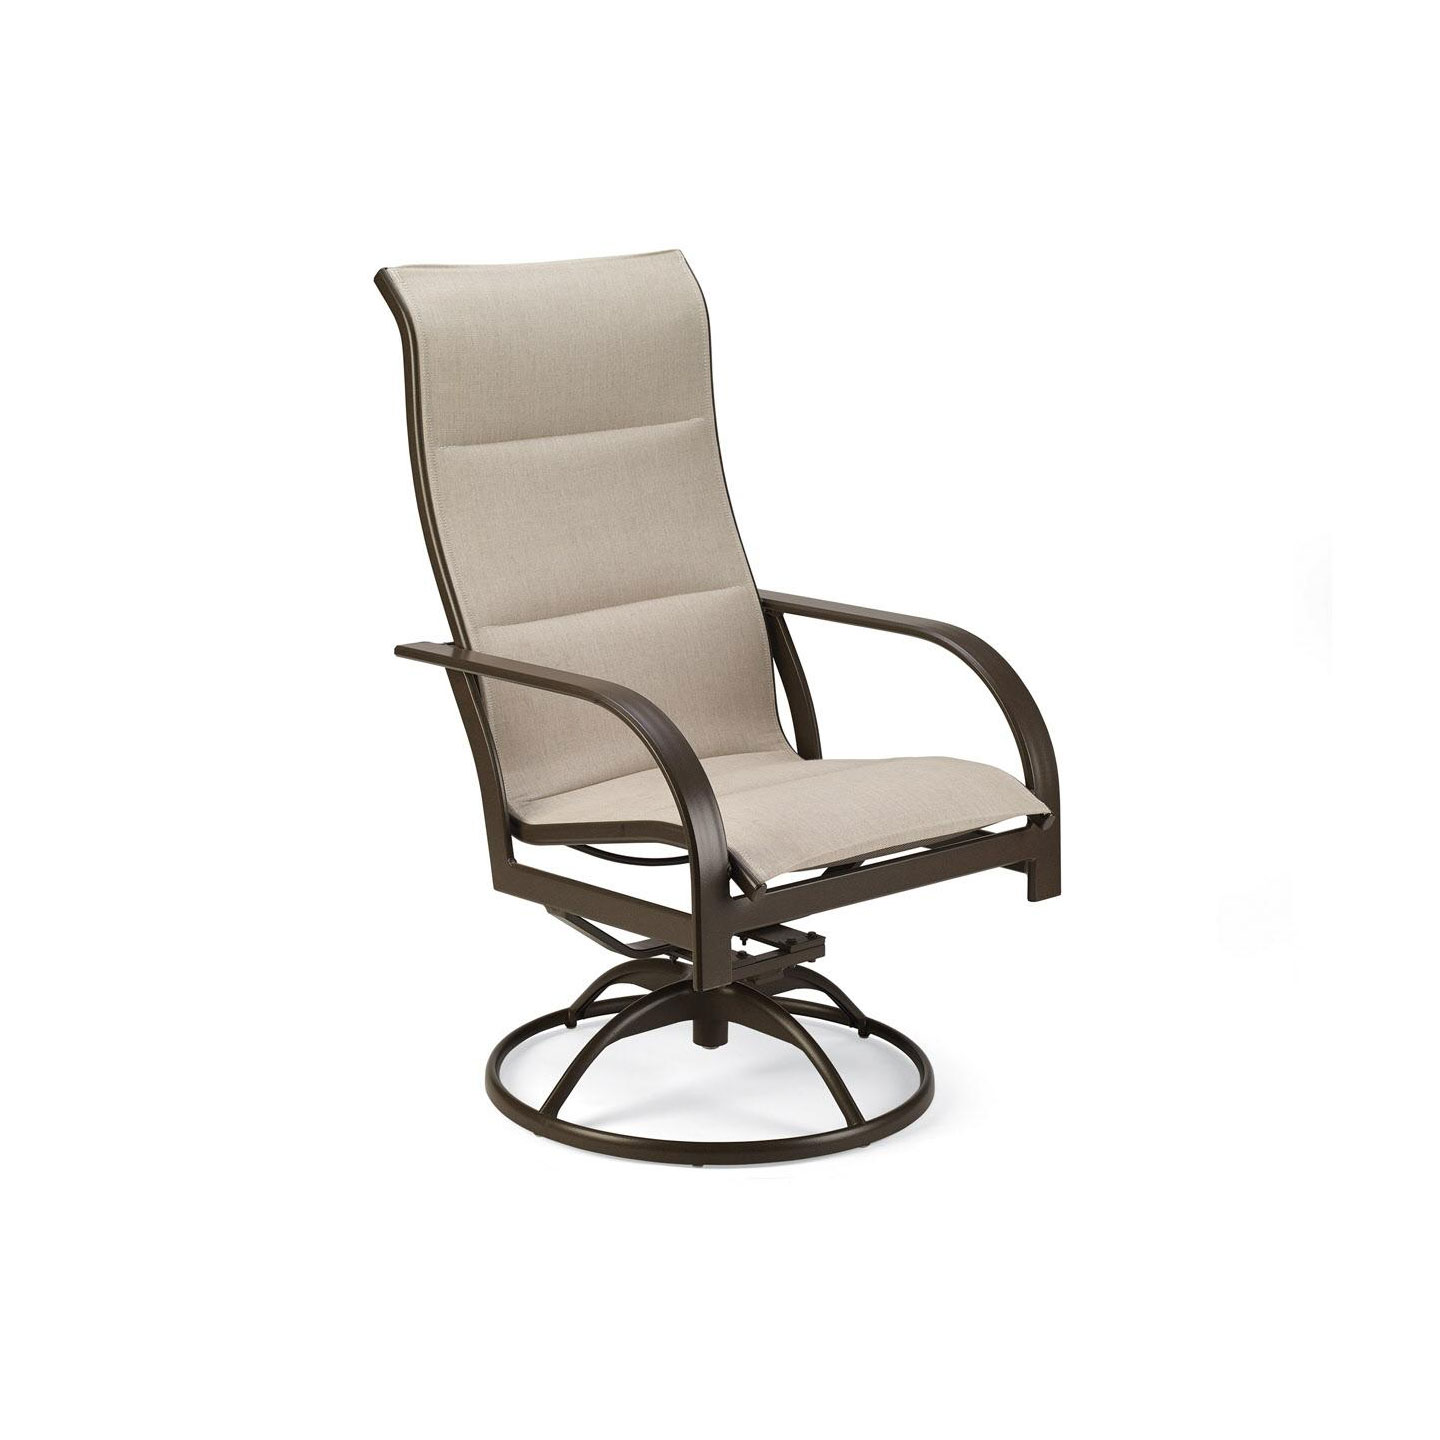 Key West Padded Sling Swivel Chair